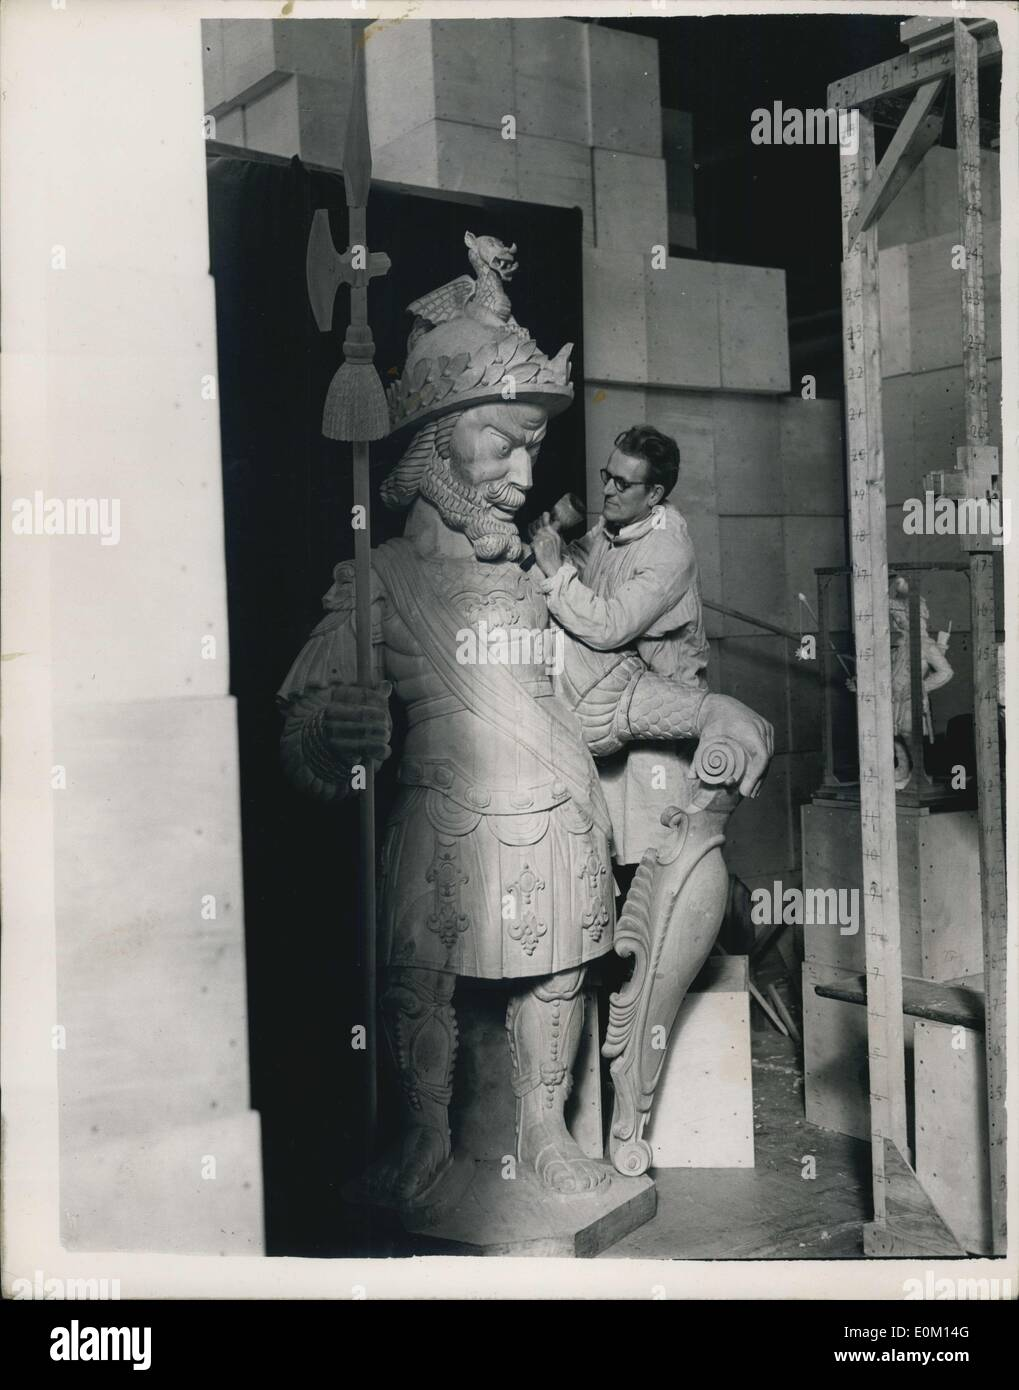 Feb. 28, 1953 - Gog and Magog Are Born Again. In a studio at Welwyn Garden City sculptor David Evans is working on two pieces of reborn London history - the new statues of those legendary giants, Gog and Magog. It is just over 12 years since their predecessors - who had stood in Guildhall since 1708 - perished in flames when fire bombs rained down. Working from clay models, the sculptor has fashioned the two statues in limewood, each 9 f. 3ins high and weighing about 15 cwt. The statues are expected to be in their places in time for the Queen's Coronation visit to the City - Stock Image